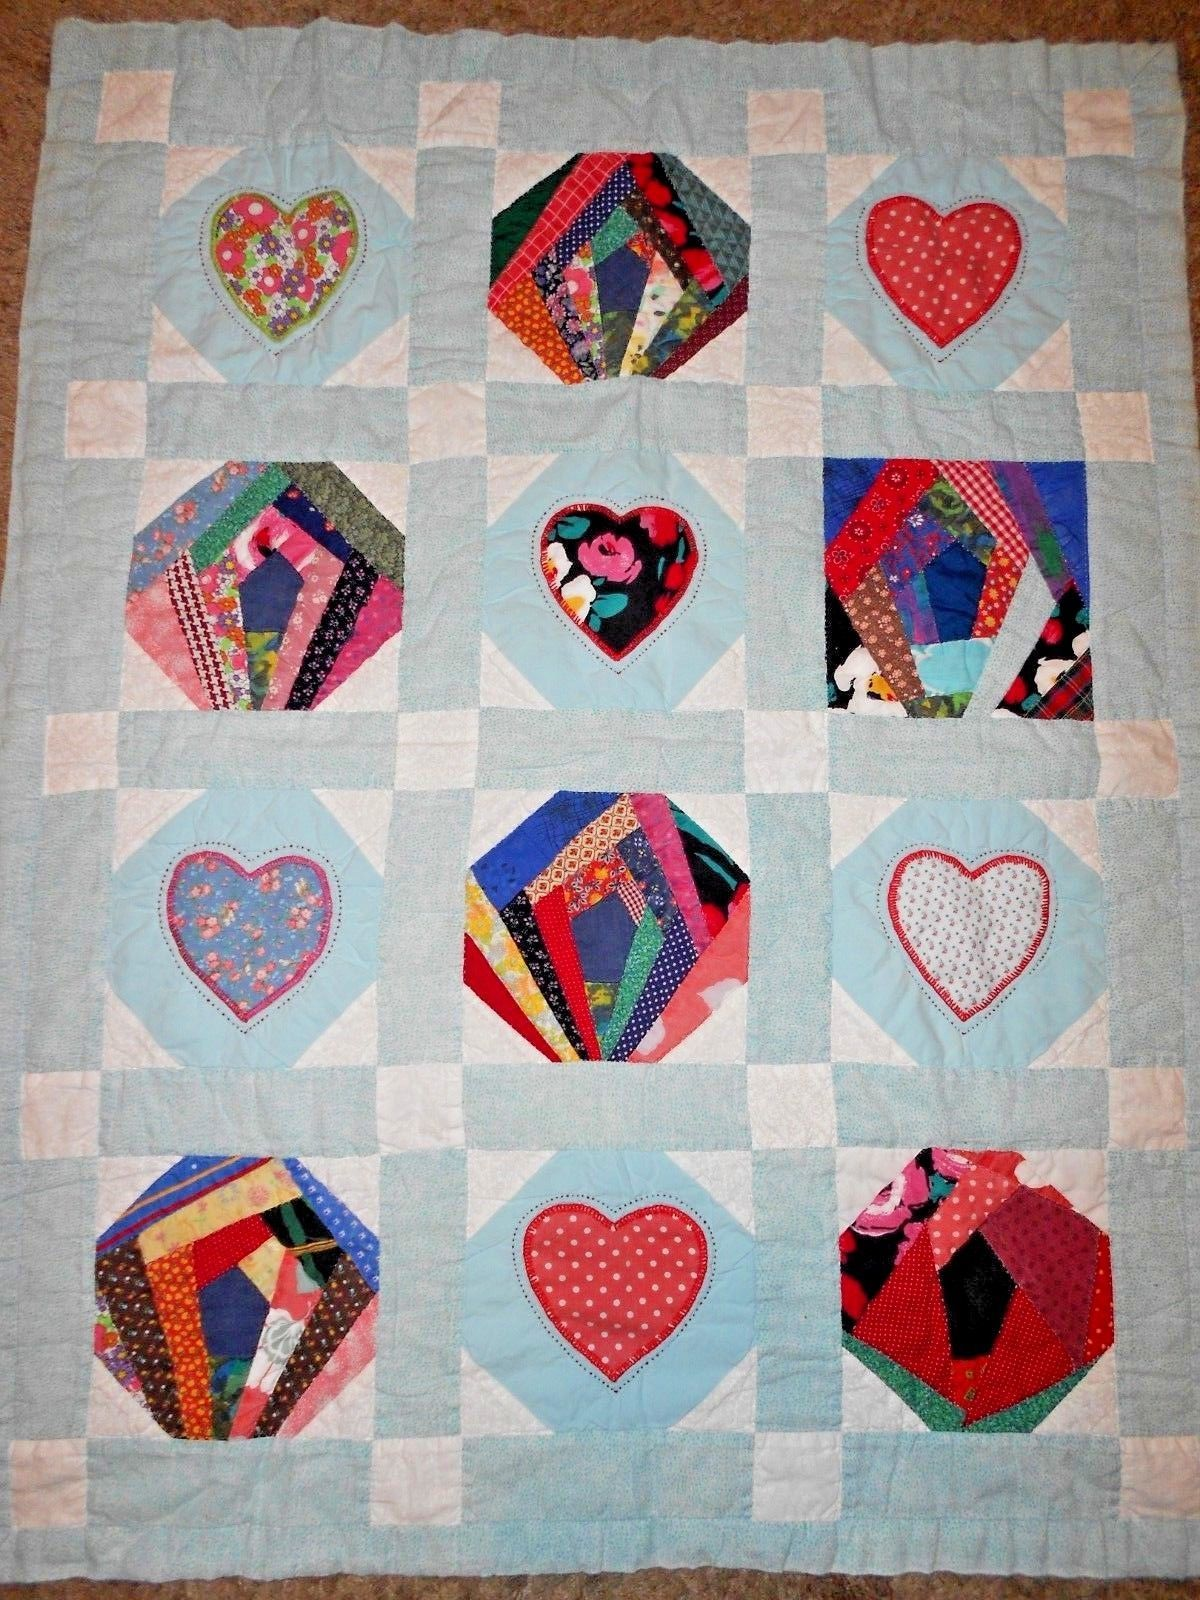 Handmade Baby Toddler Quilt Blue Patchwork Strips Hearts Polka Dot